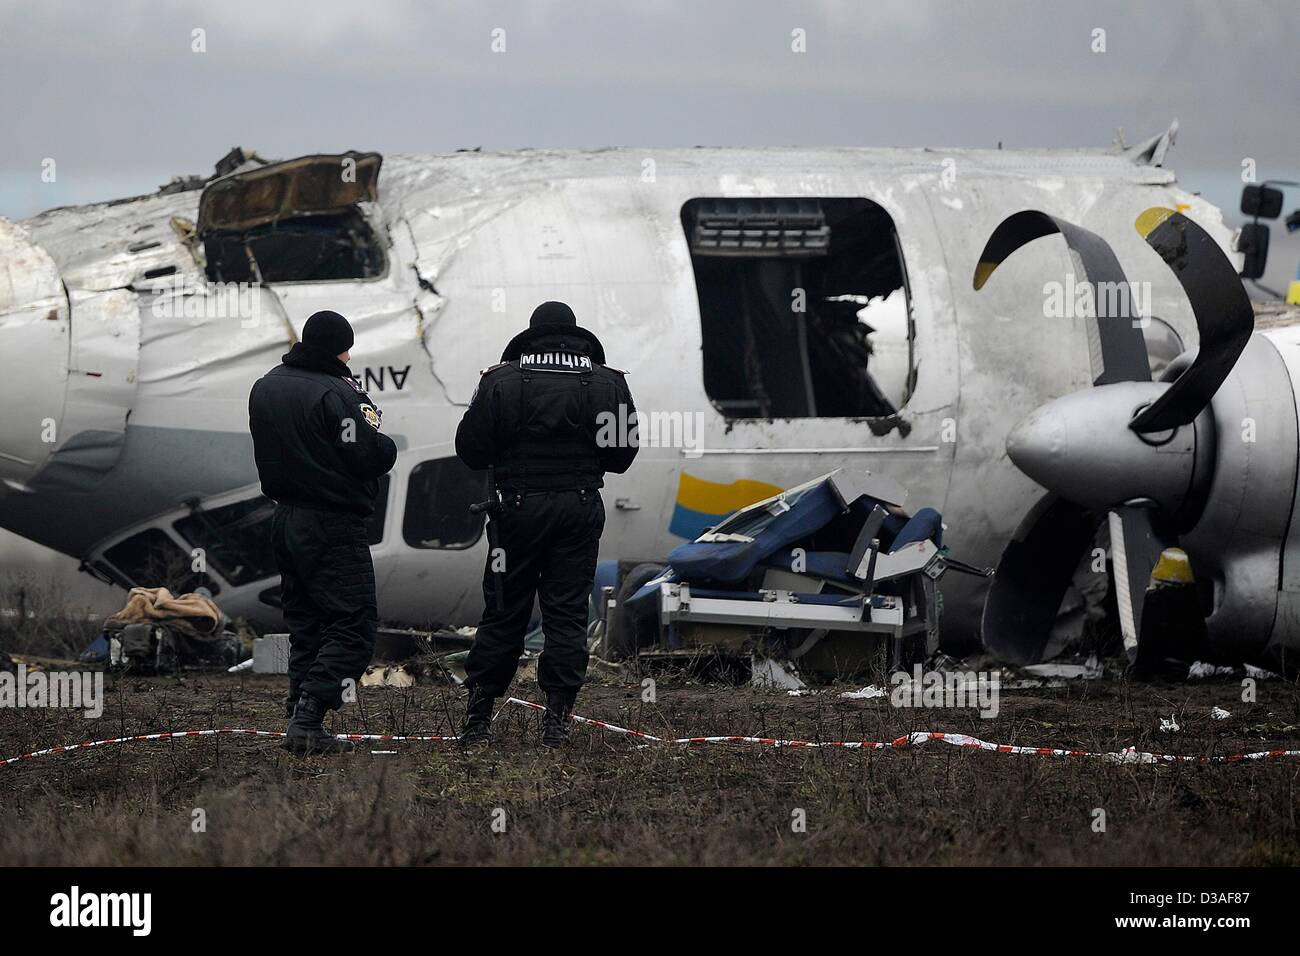 Plane crash over Lake Constance: causes, investigation, consequences 5